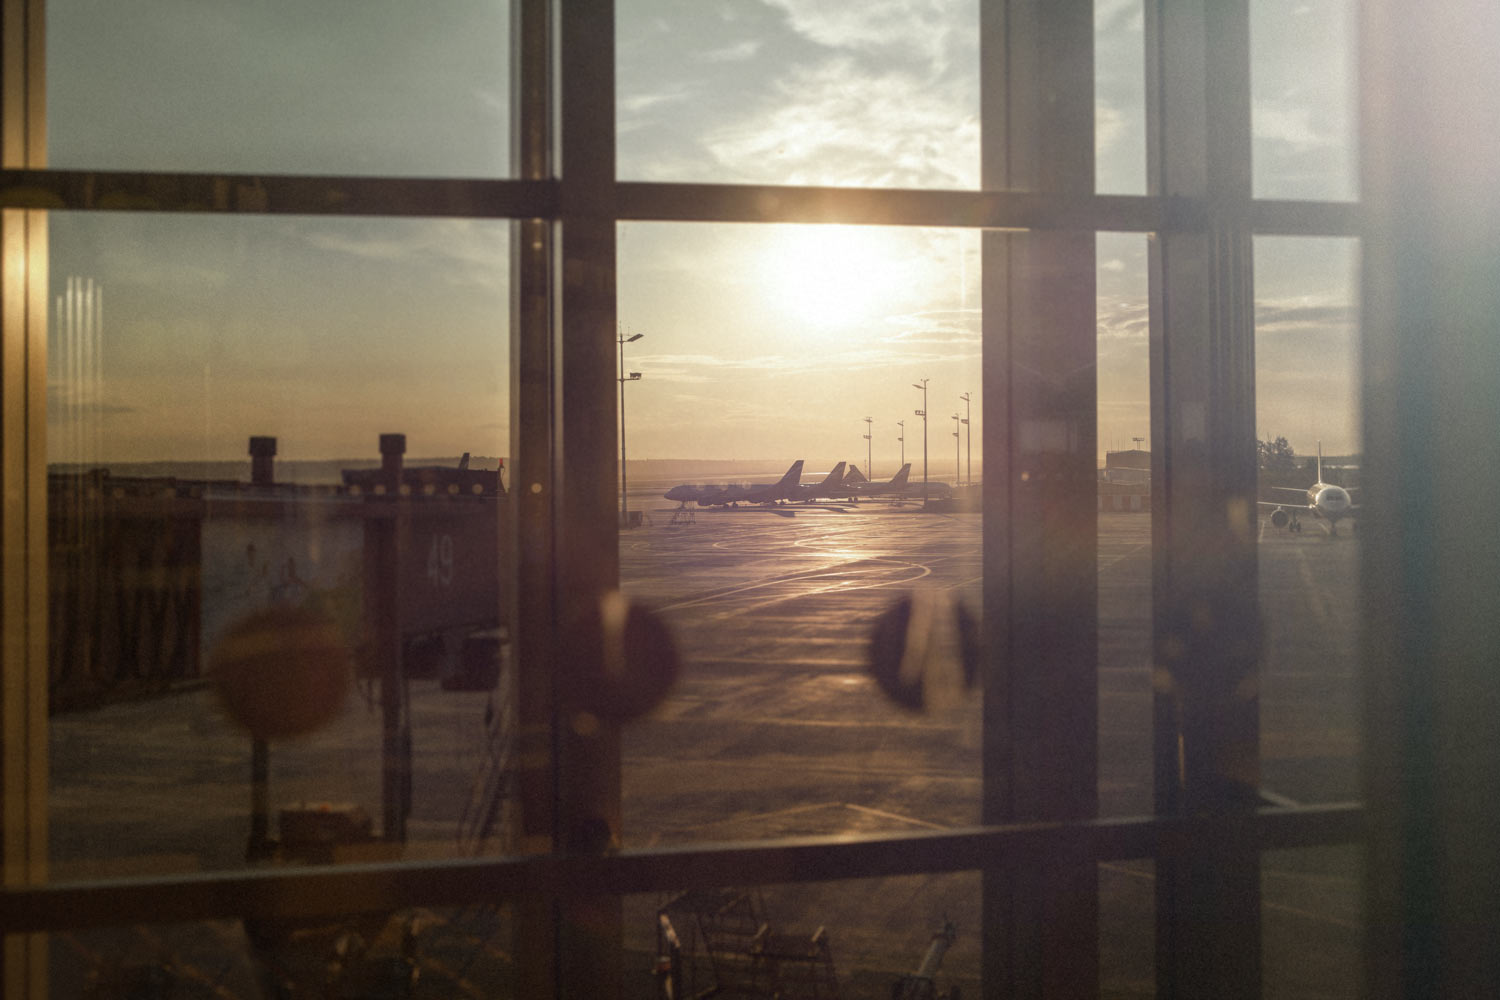 pavel-Hejny-Moscow-international-airport